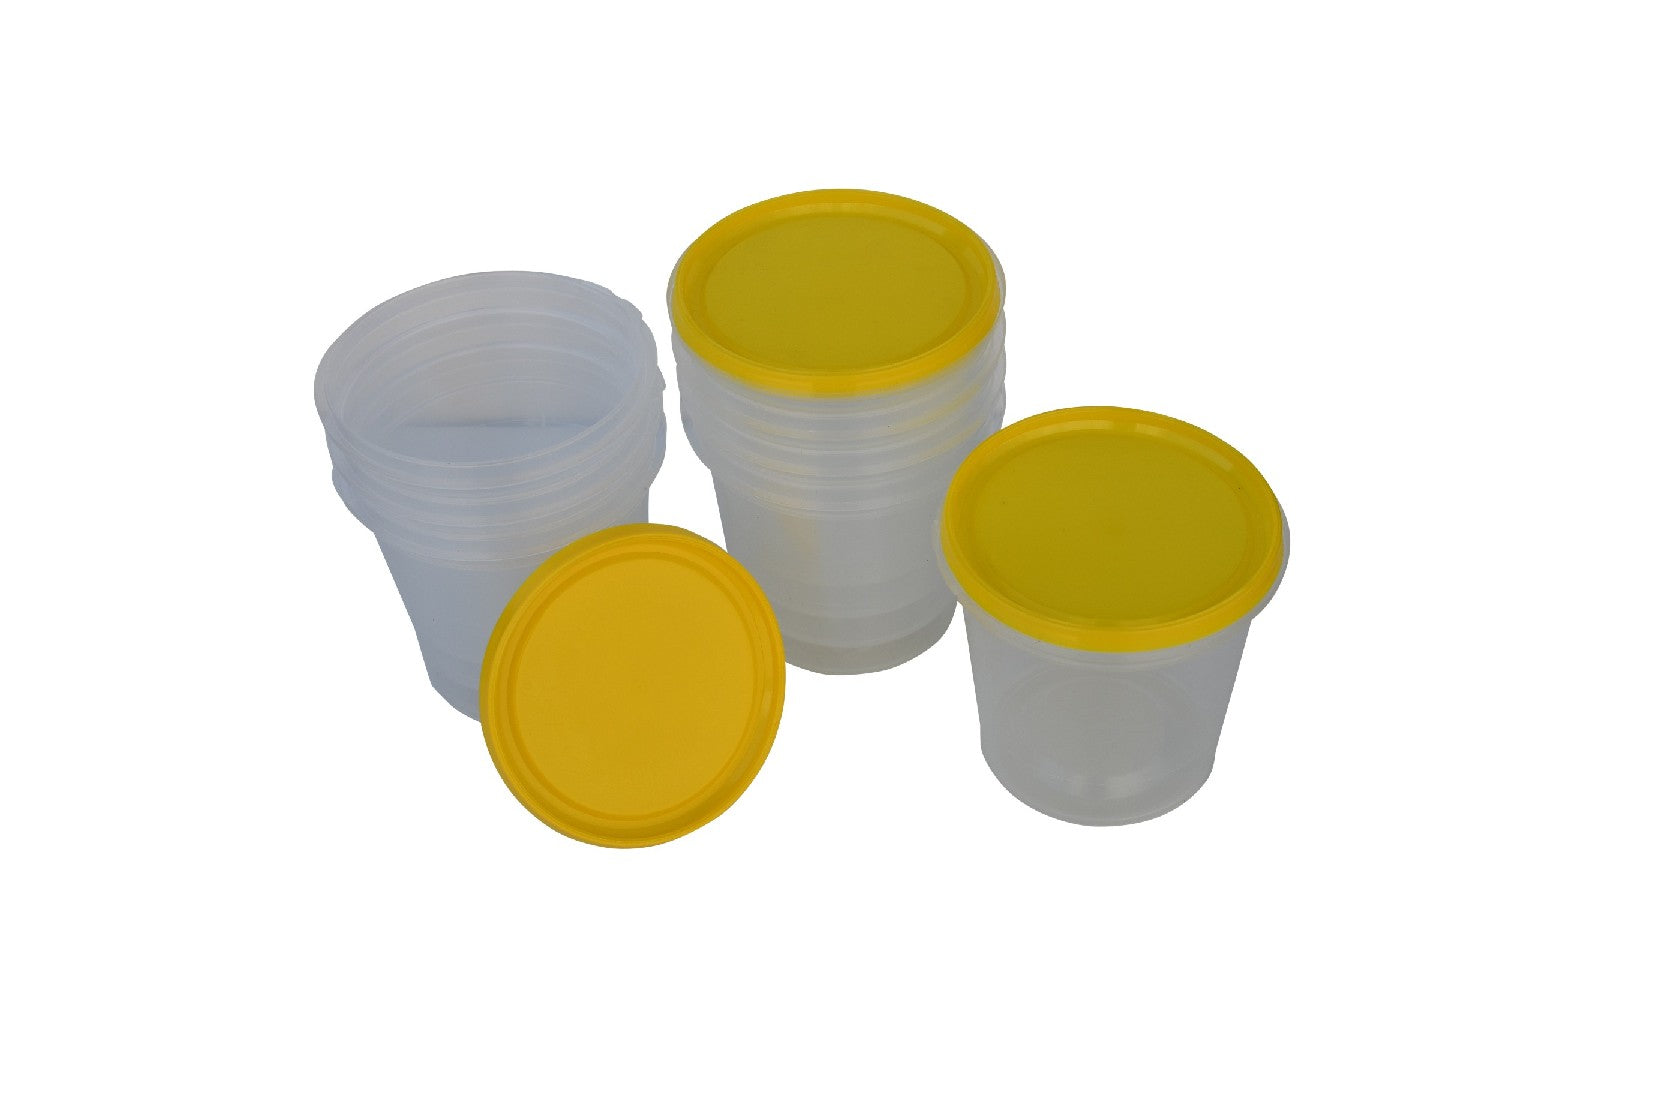 100 x Honey Containers 500 grams